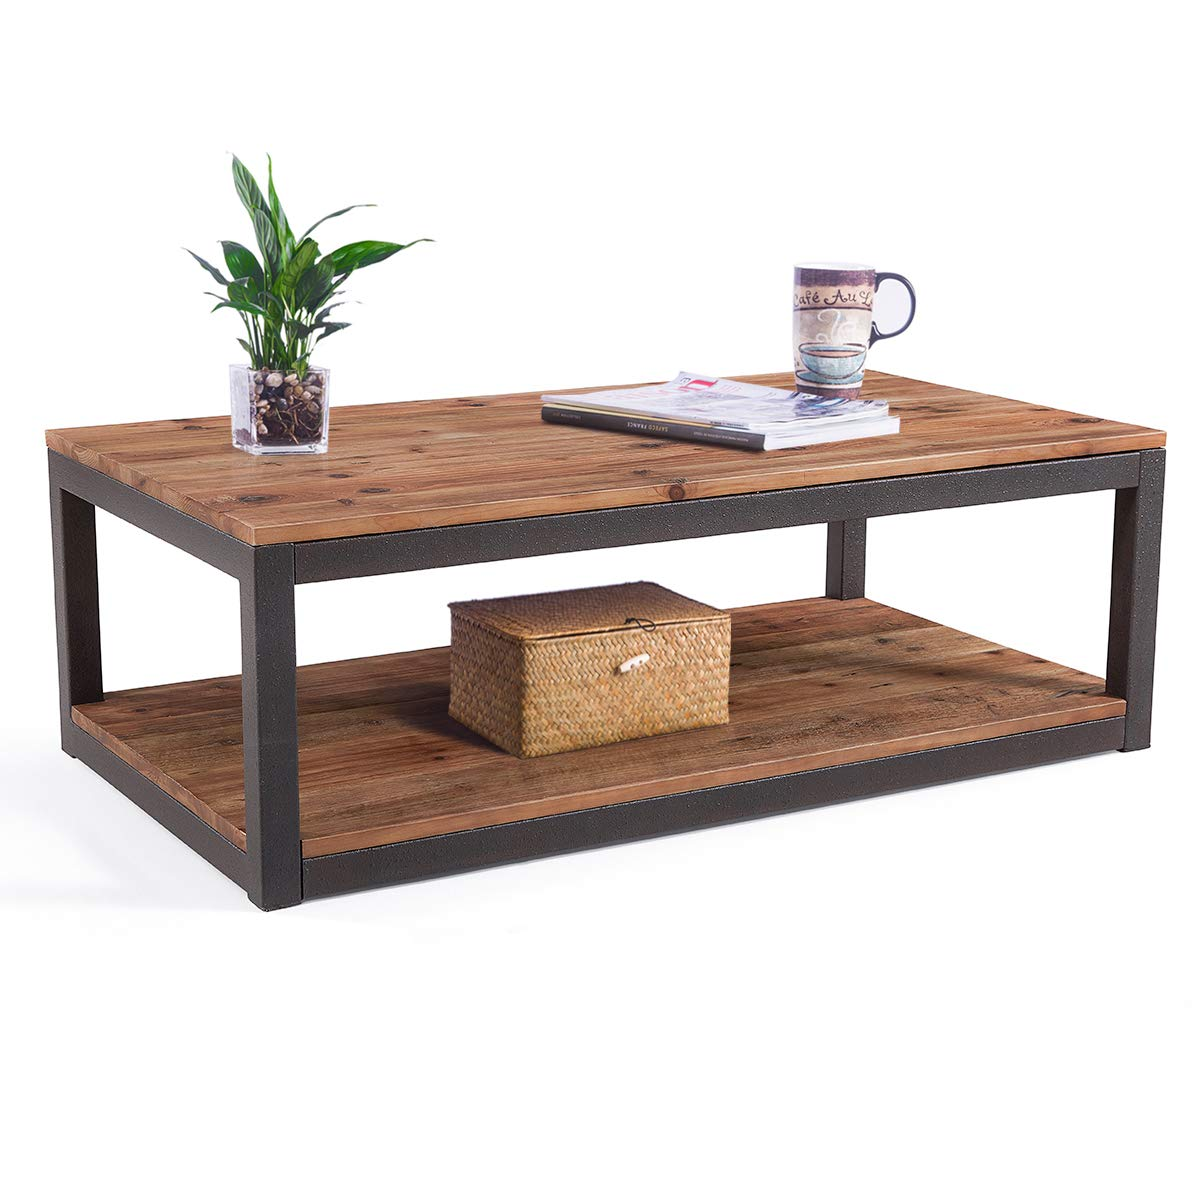 Care Royal Vintage Industrial Farmhouse 43.3 inches Coffee Table with Storage Shelf for Living Room, Accent Cocktail Table, Natural Solid Reclaimed Wood, Sturdy Rustic Brown Metal Frame, Easy Assembly by Care Royal